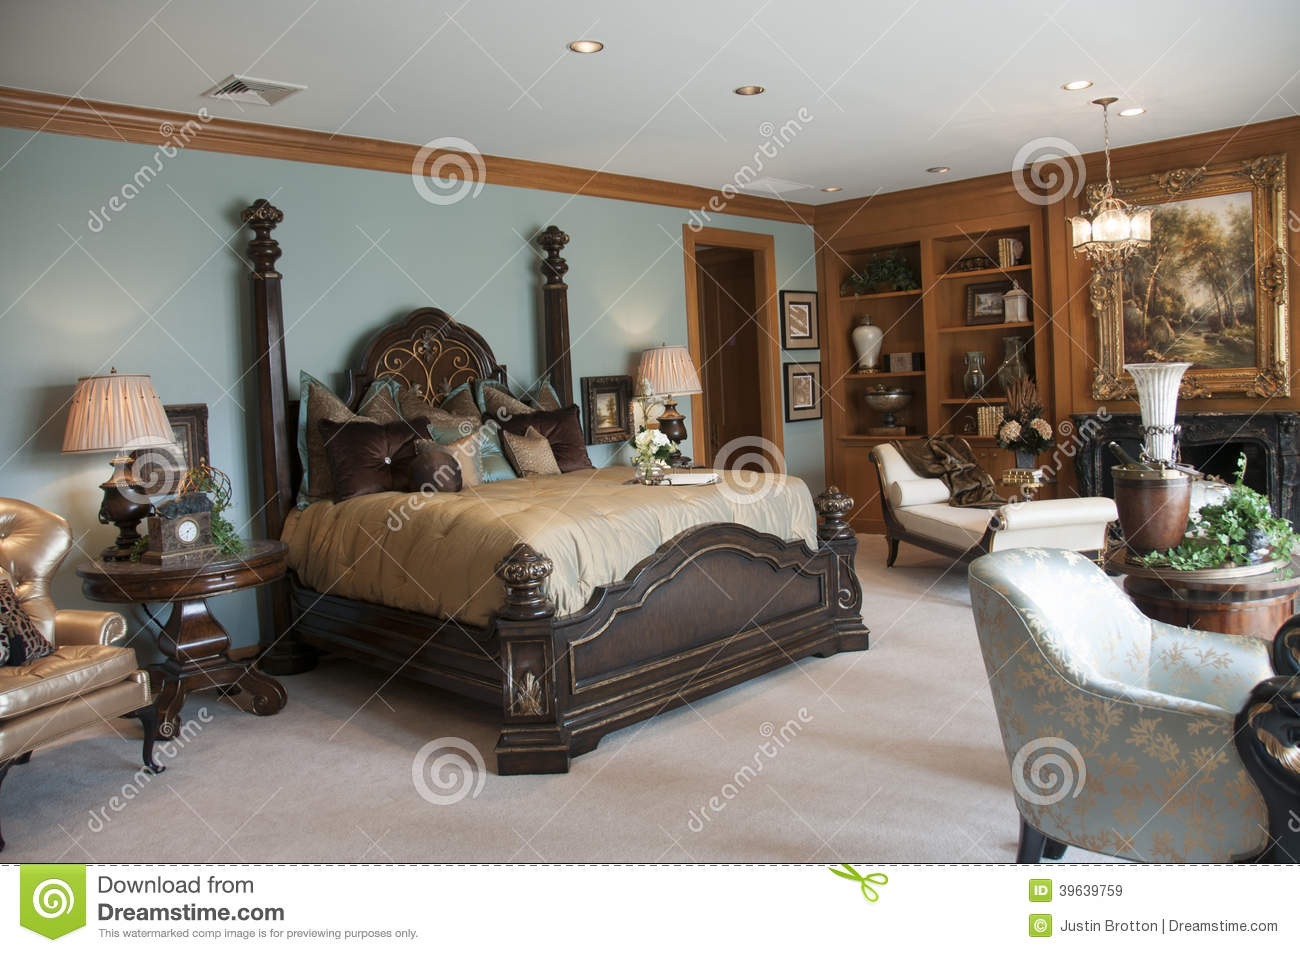 Belle Chambre Coucher Principale Photo Stock Image